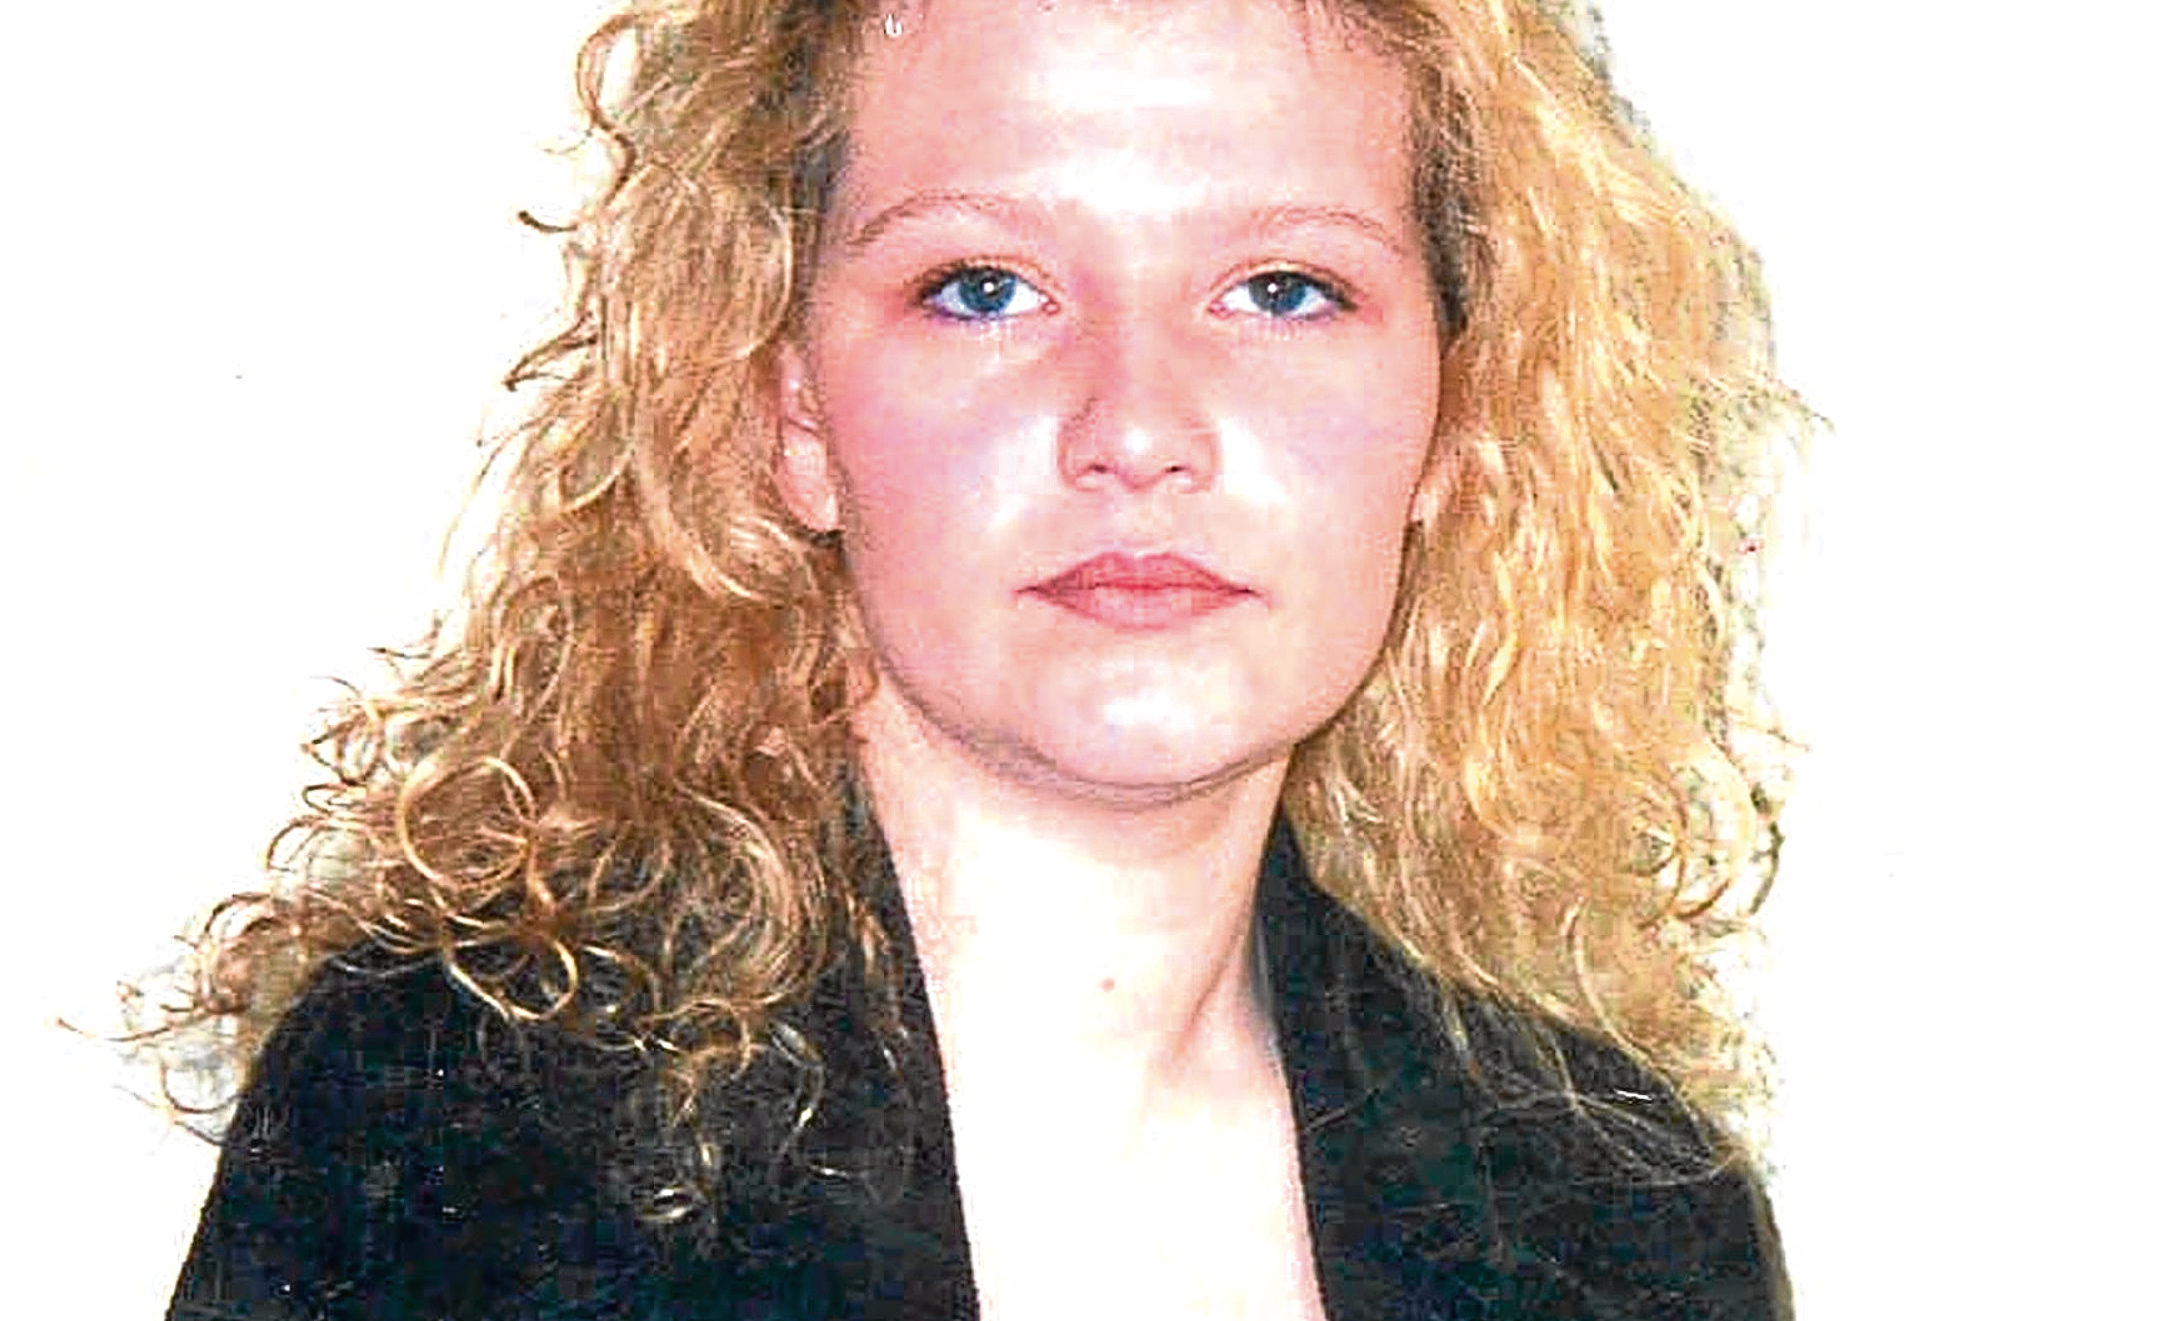 Emma Caldwell, whose body was discovered in woodland near Biggar, South Lanarkshire in 2005